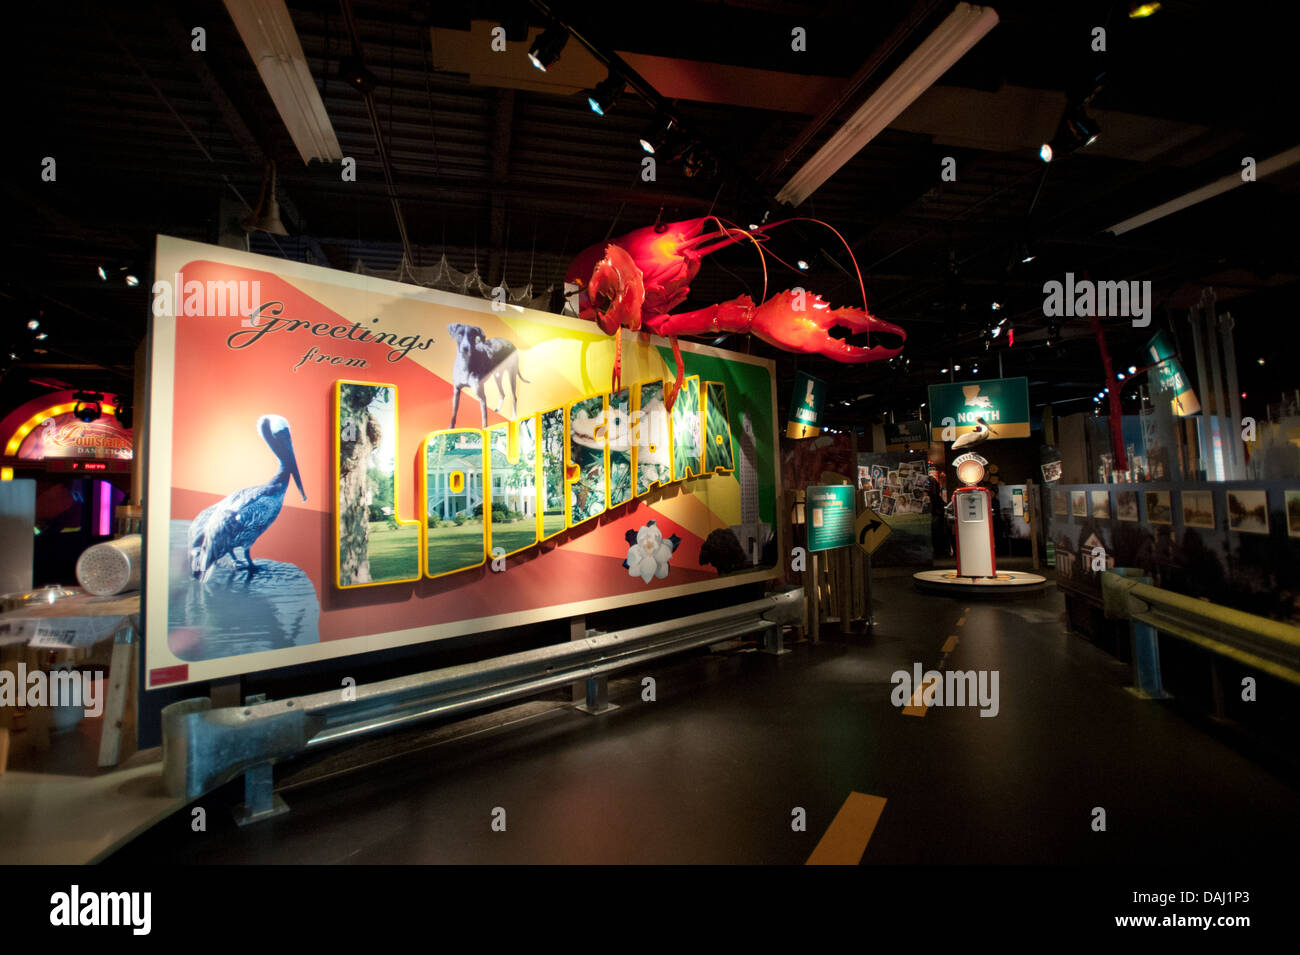 Louisiana State Museum, Baton Rouge, Louisiana, United States of America - Stock Image